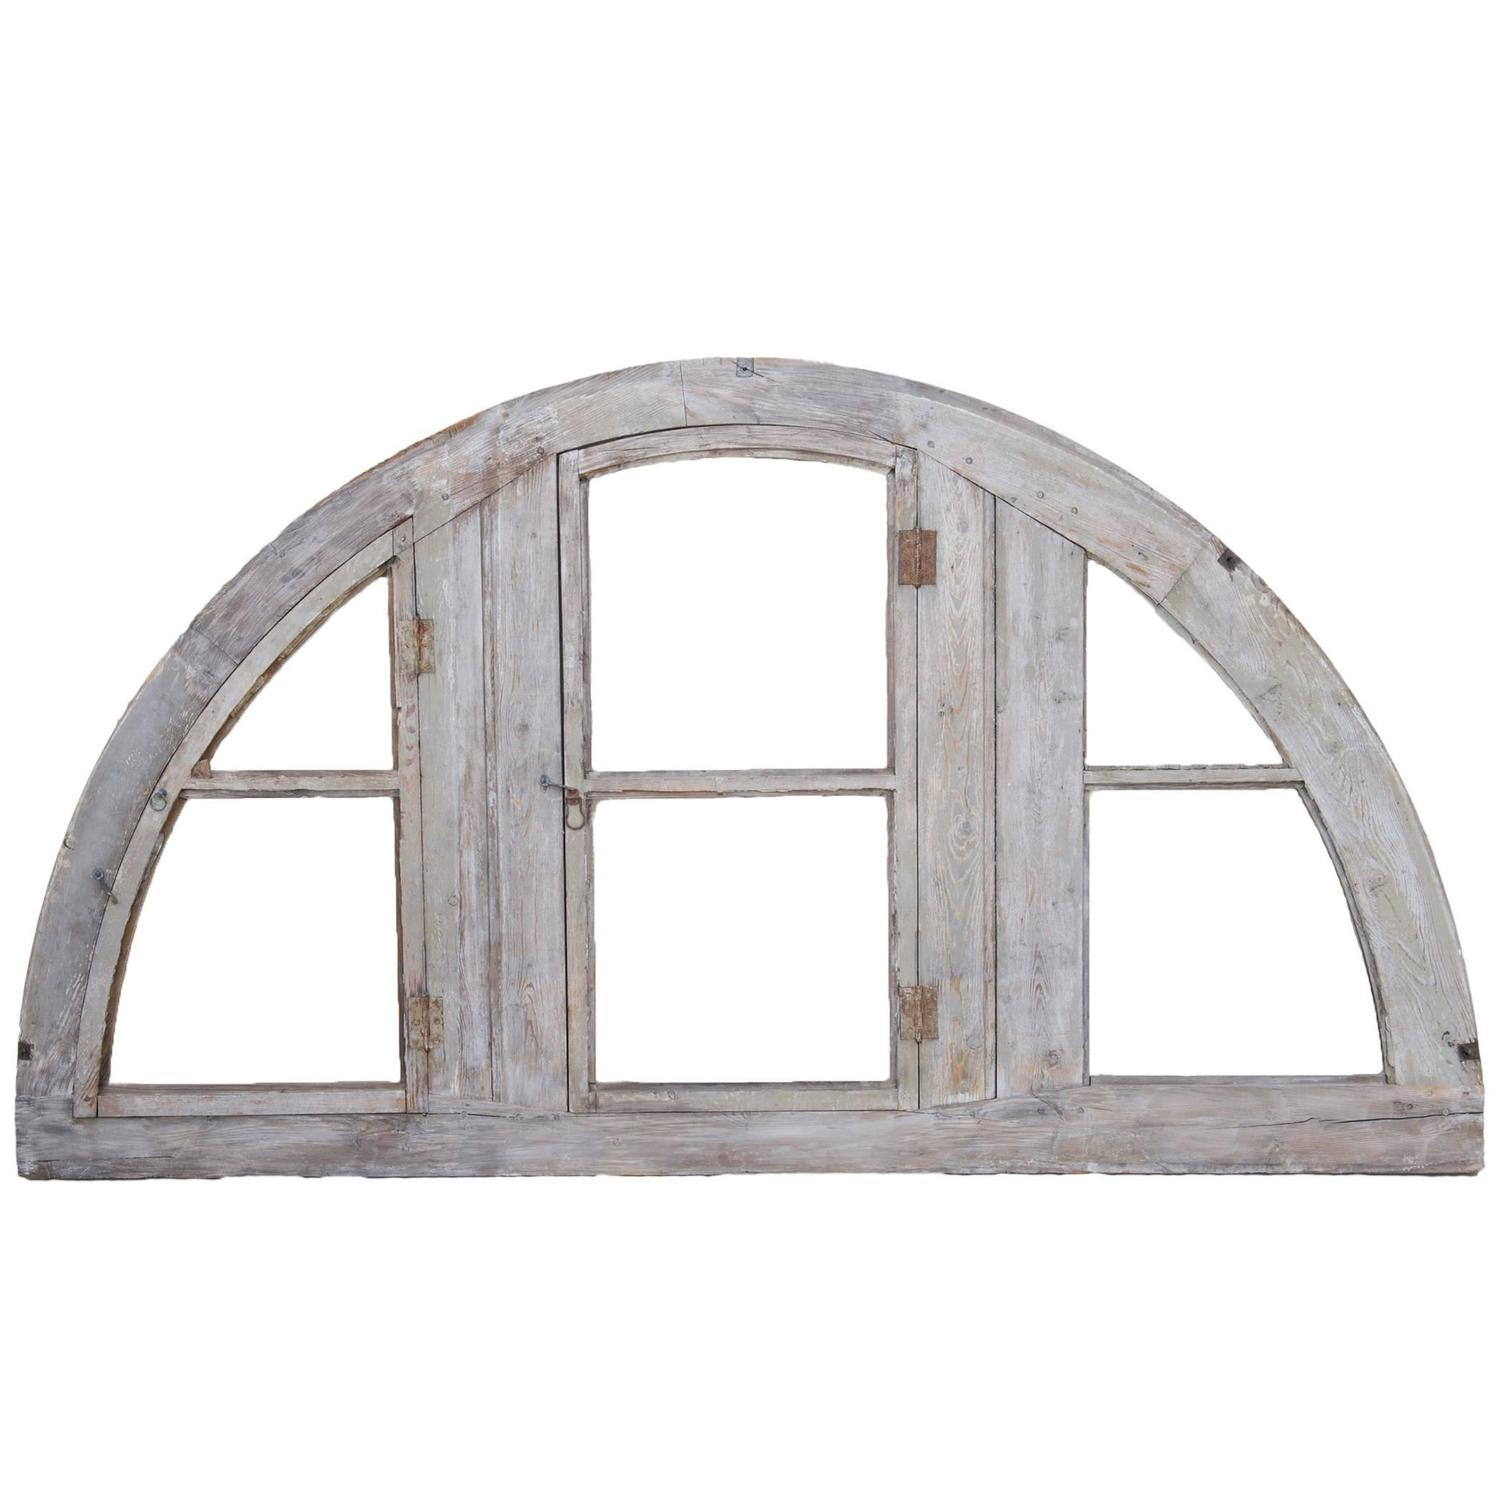 Antique French Demilune Window Frame at 1stdibs